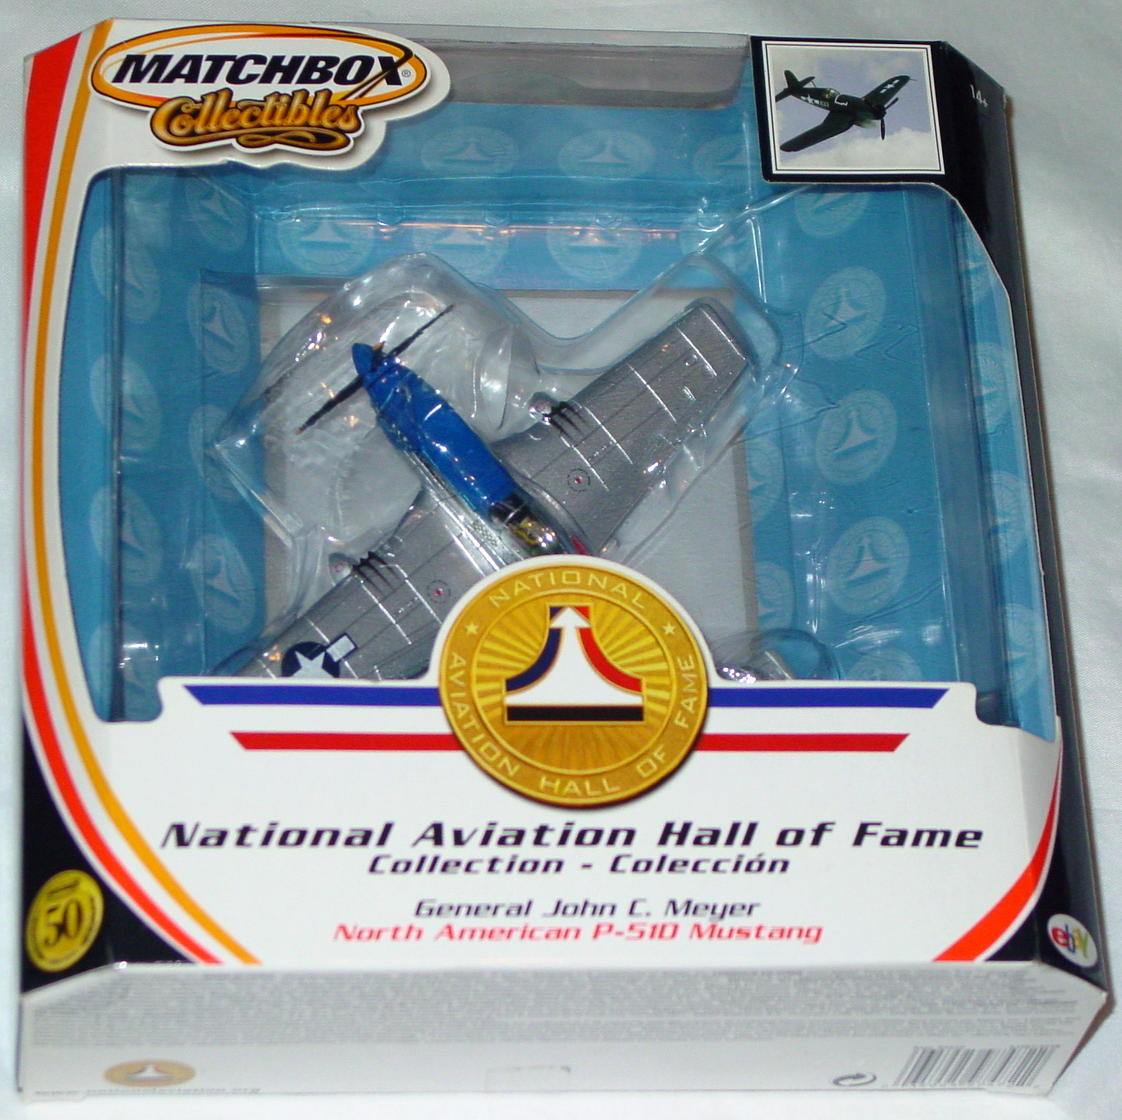 Collectibles - 91057 P51D Mustang blue and Silver Gen. John C Meyer